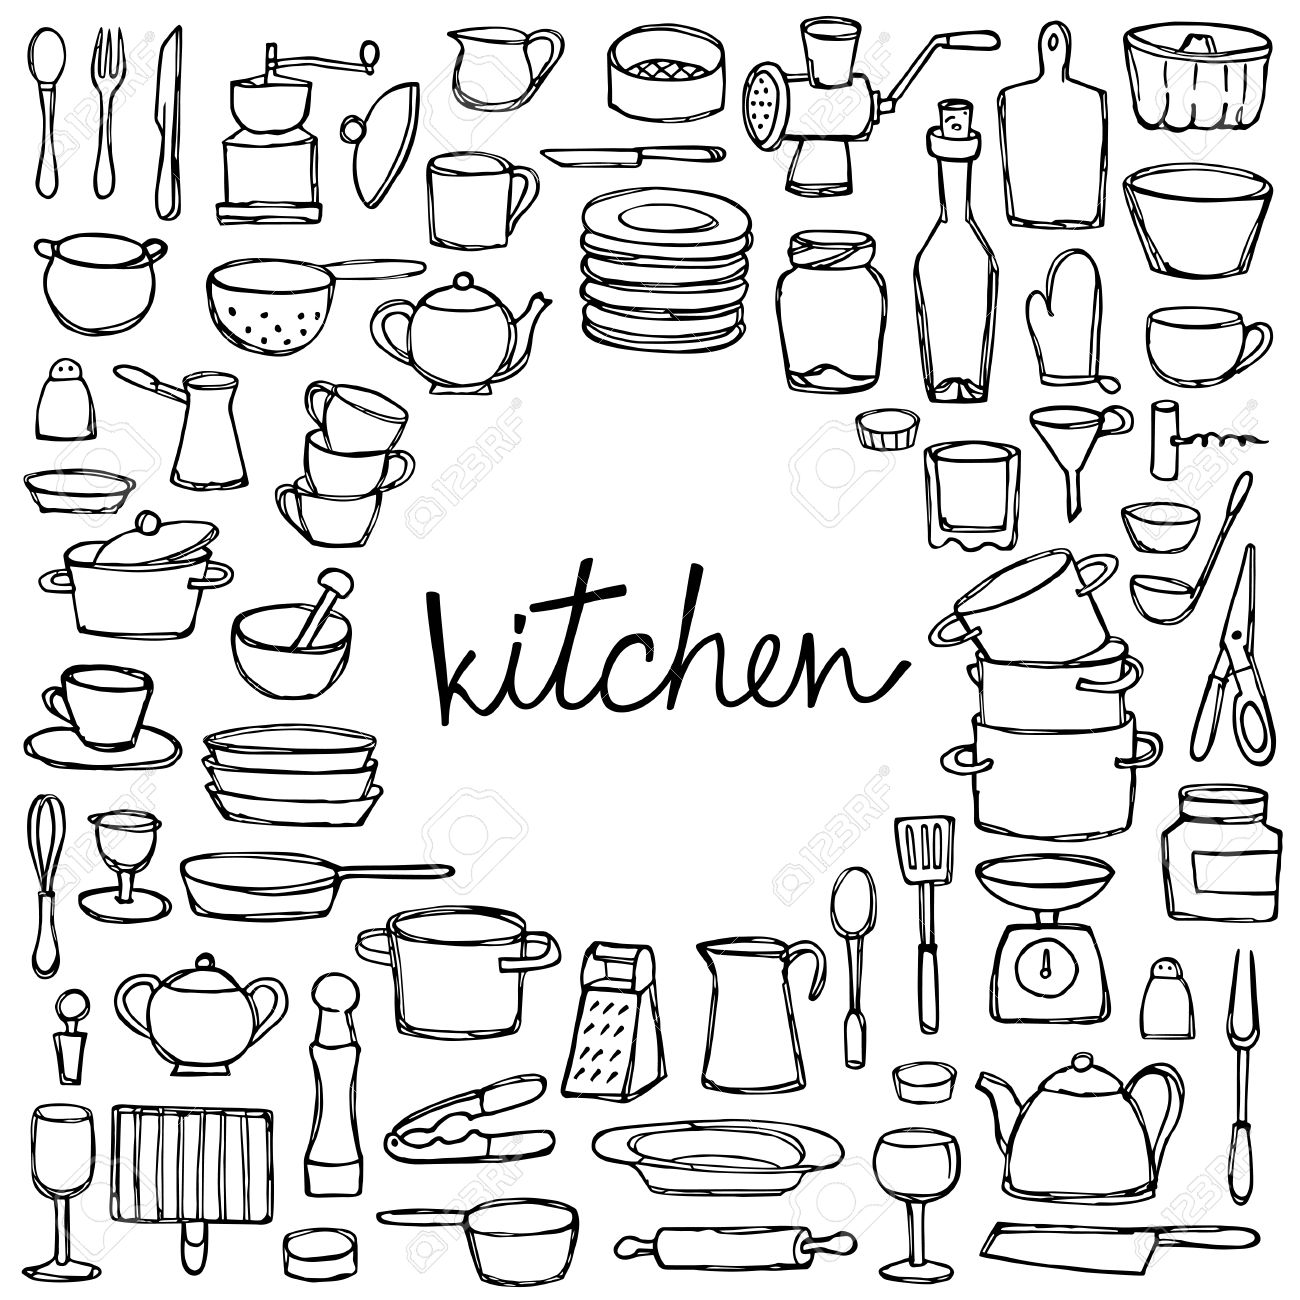 Kitchen doodles coloring page with lettering sketch of kitchen coloring page with lettering sketch of kitchen objects and equipment stock vector altavistaventures Choice Image